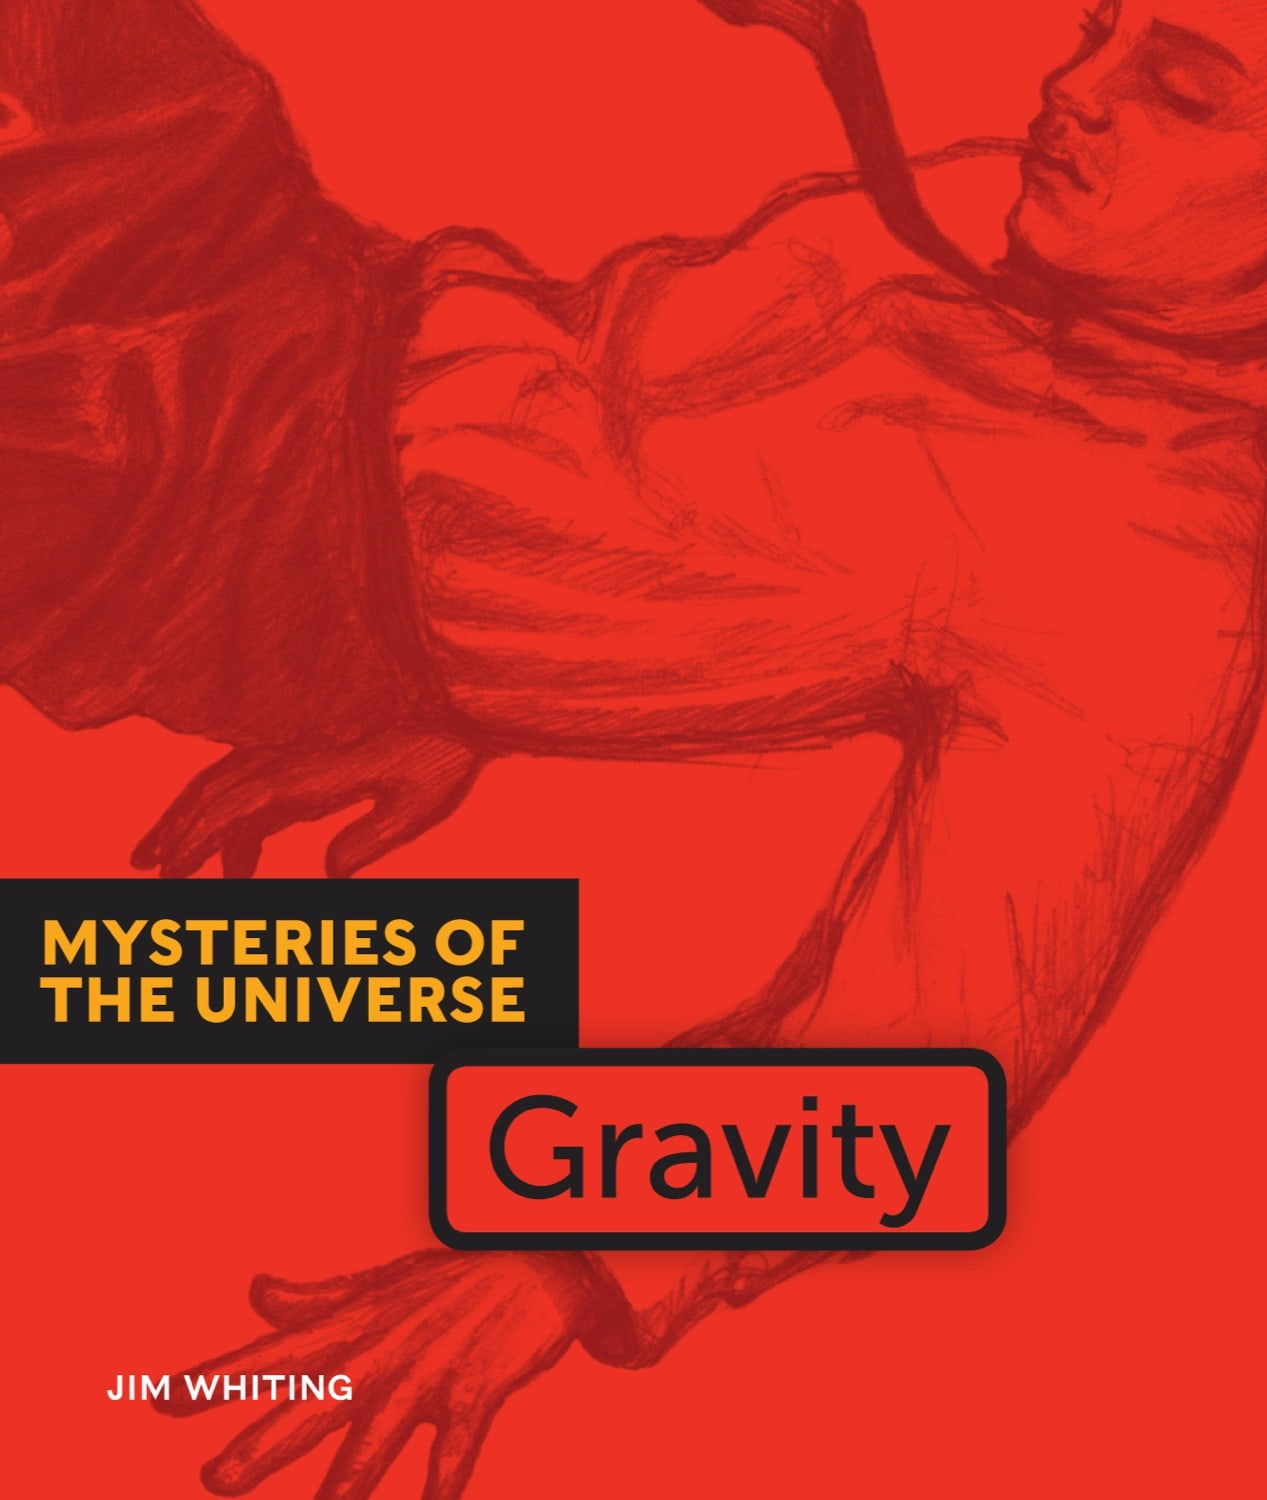 Mysteries of the Universe: Gravity